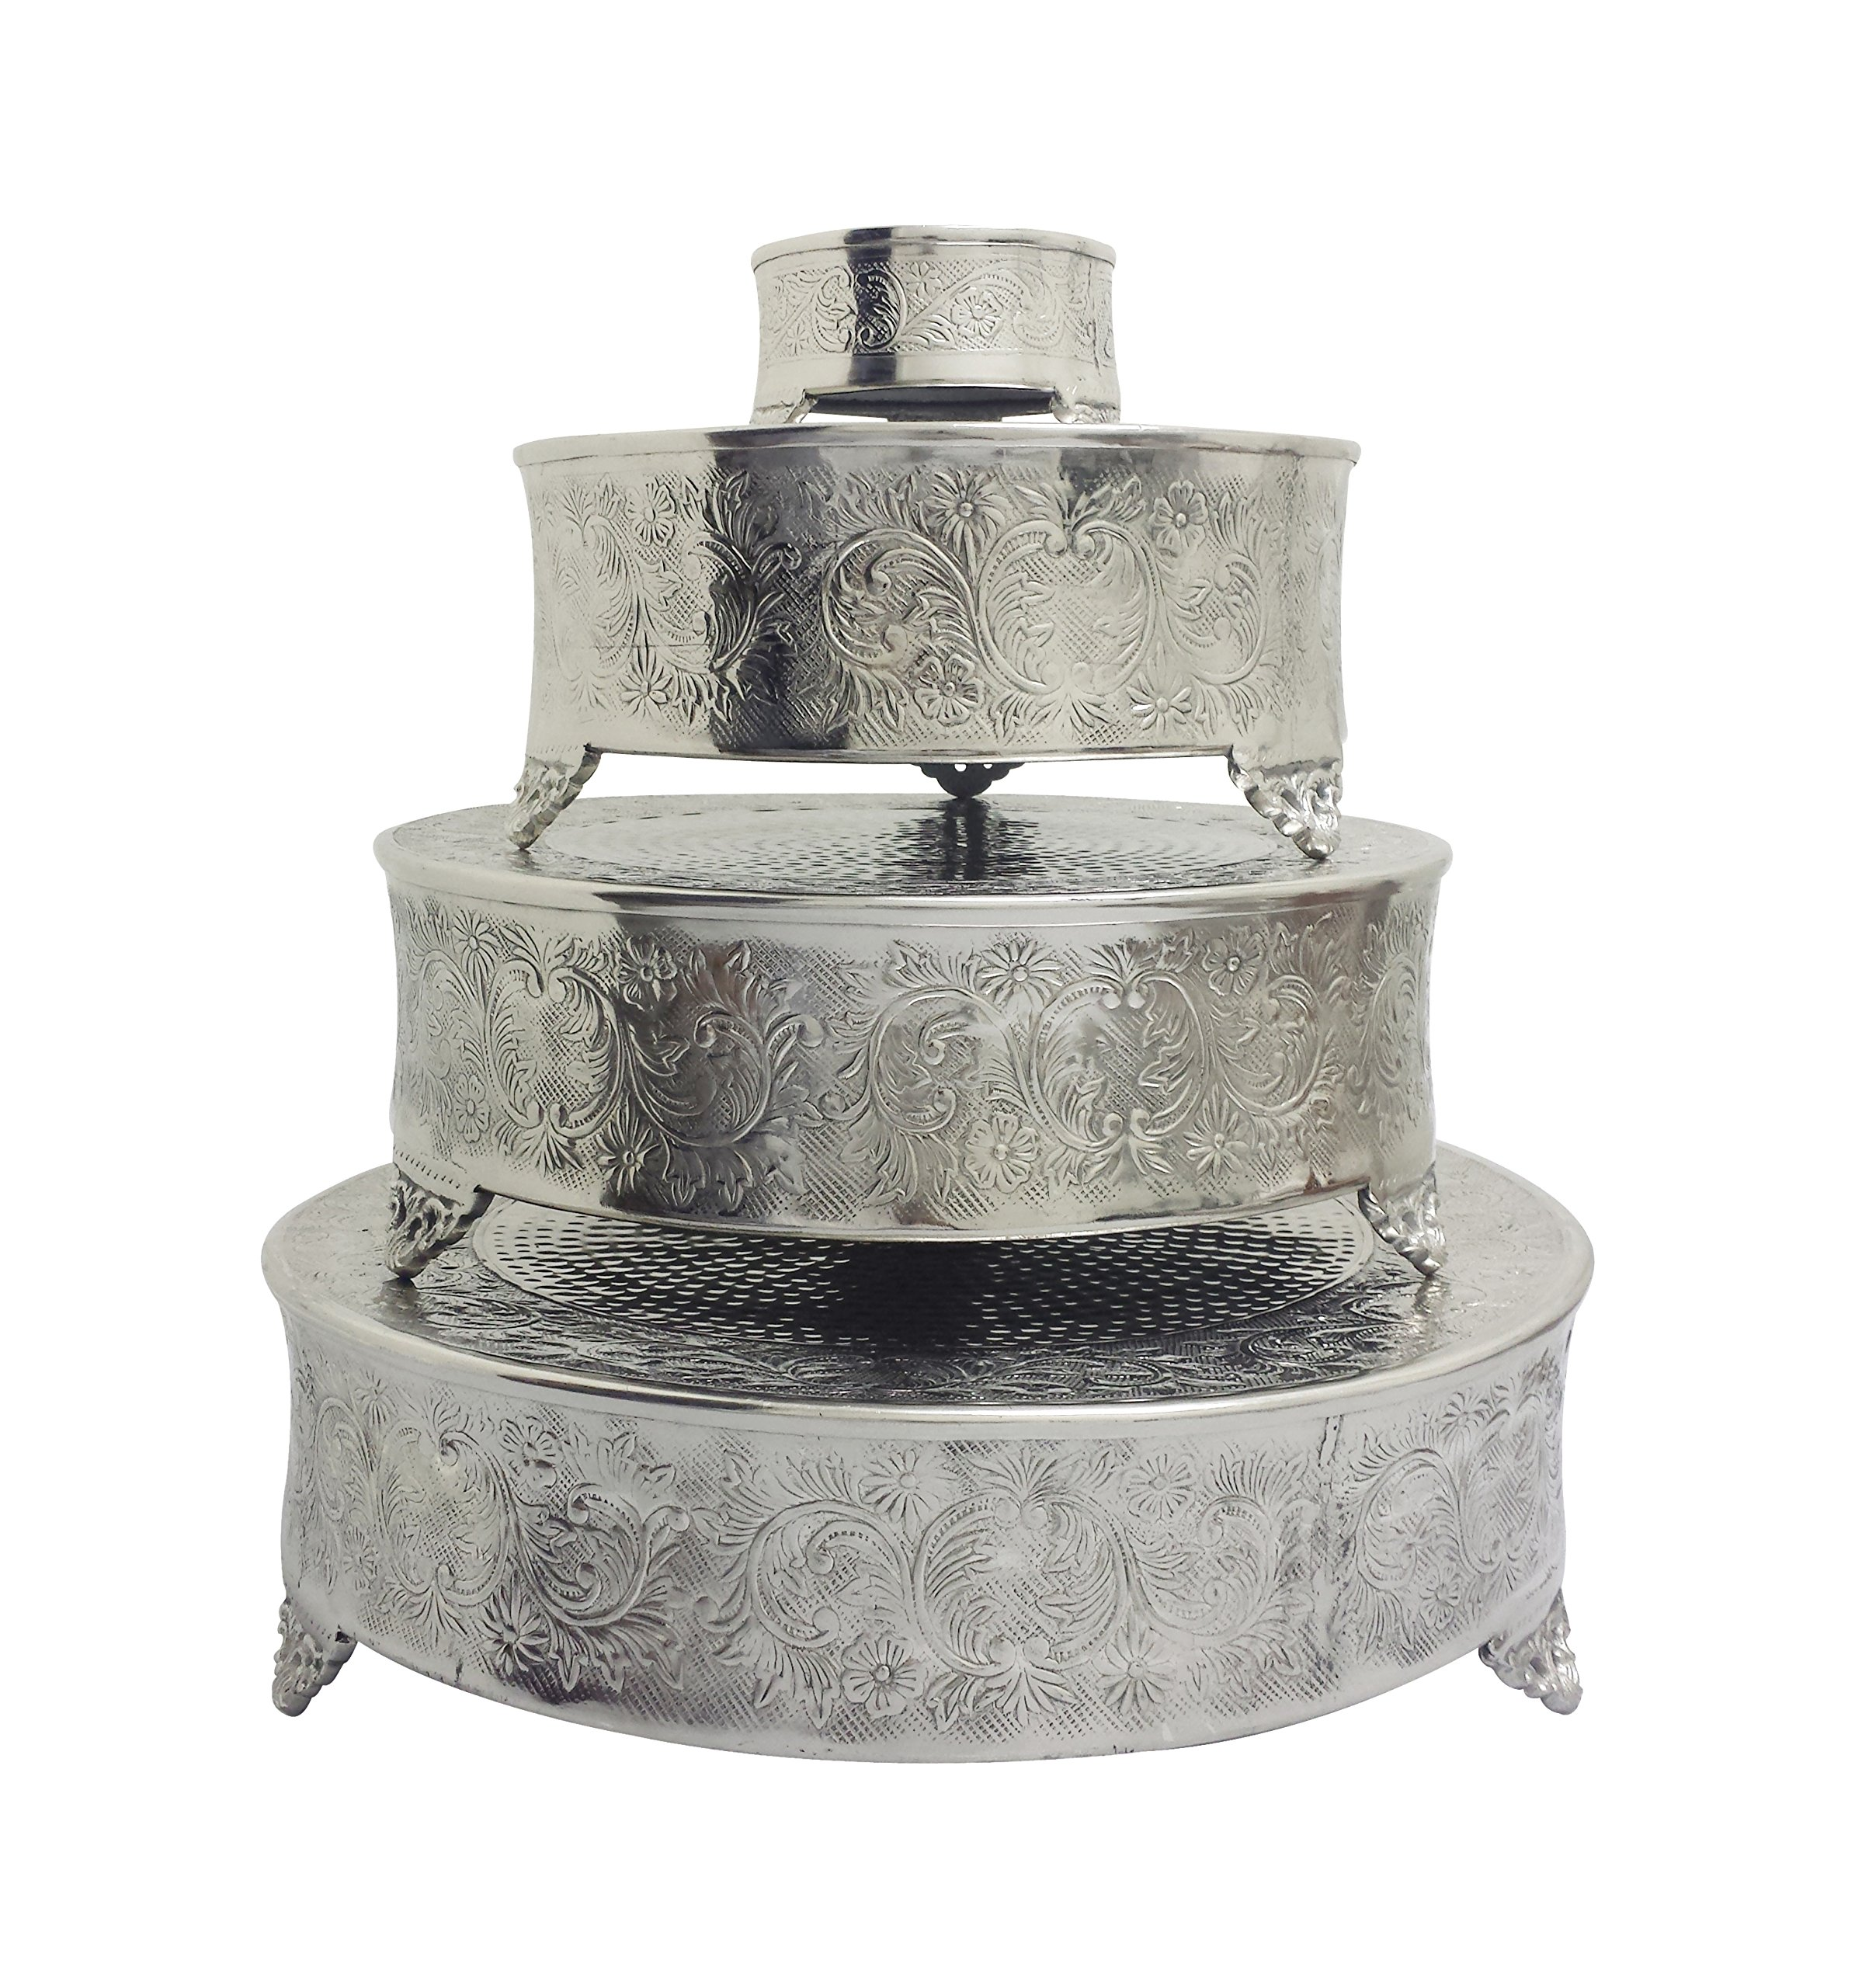 GiftBay Cake Stand Round Set of 22'', 18'', 14'' & 6'' Silver Specifically Made for Professional Bakers and Sold With Huge Discount by GiftBay Creations